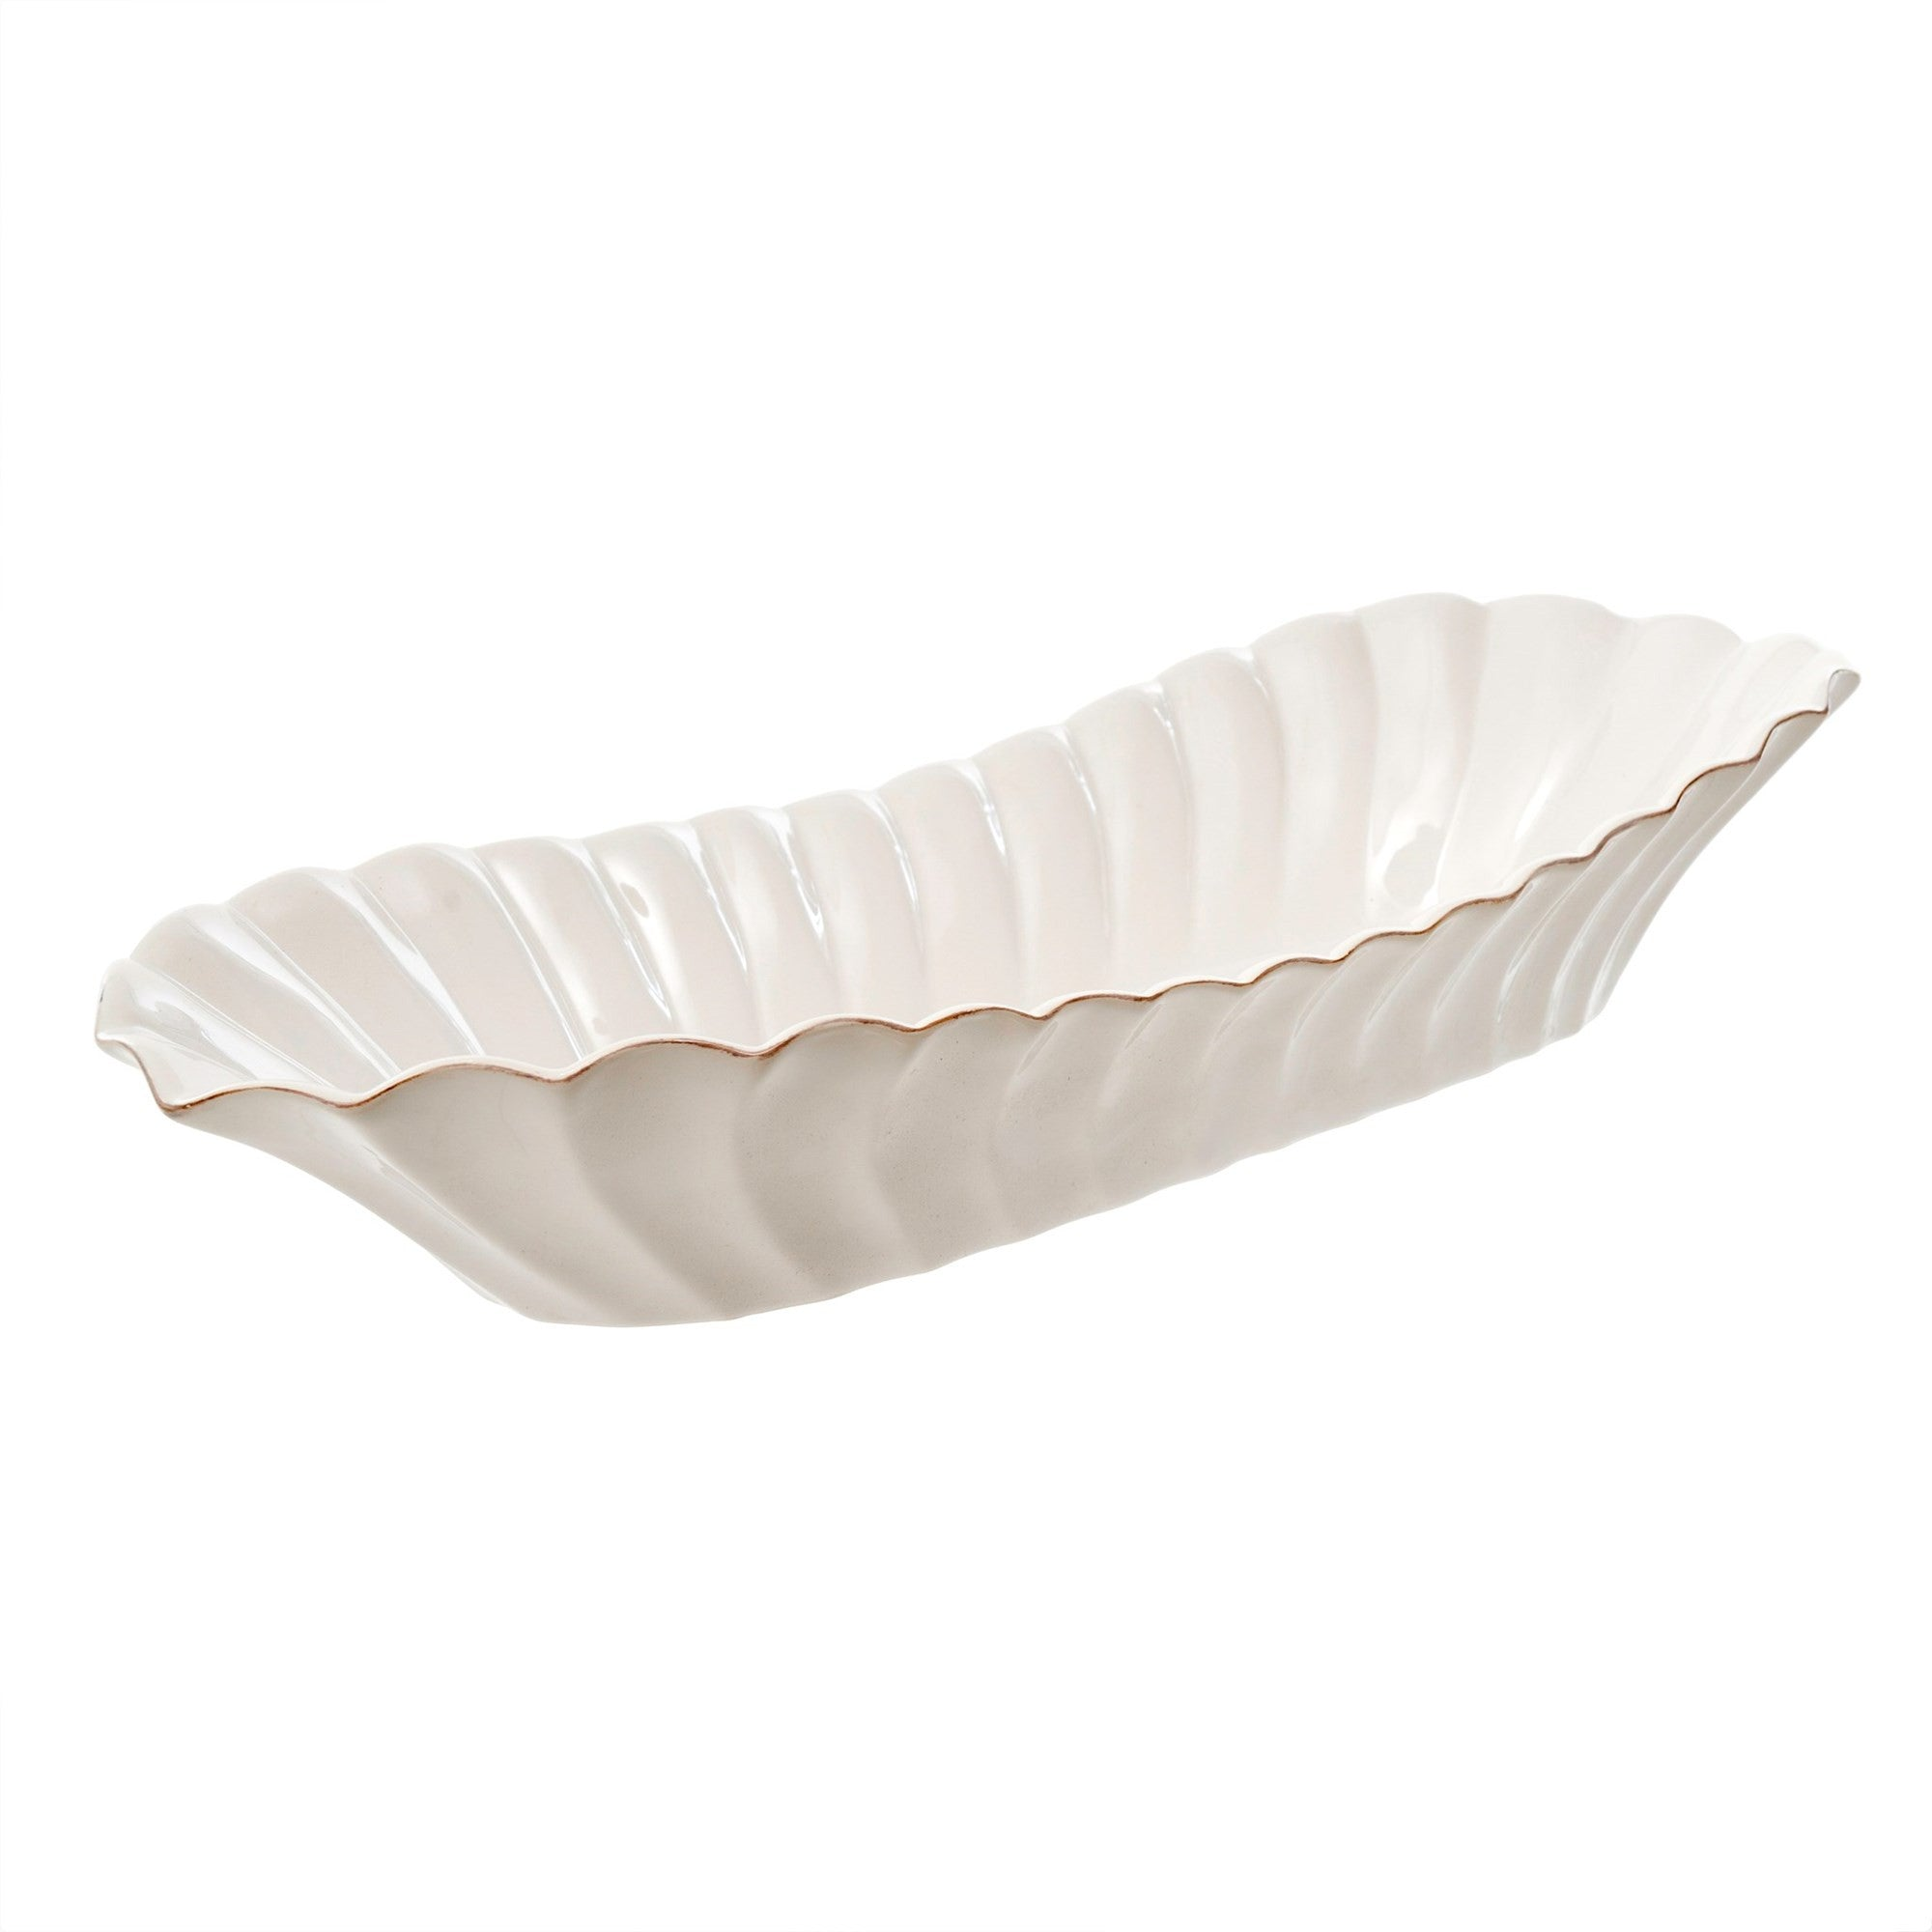 Roma Scalloped Serving Dish, IT-Indaba Trading, Putti Fine Furnishings